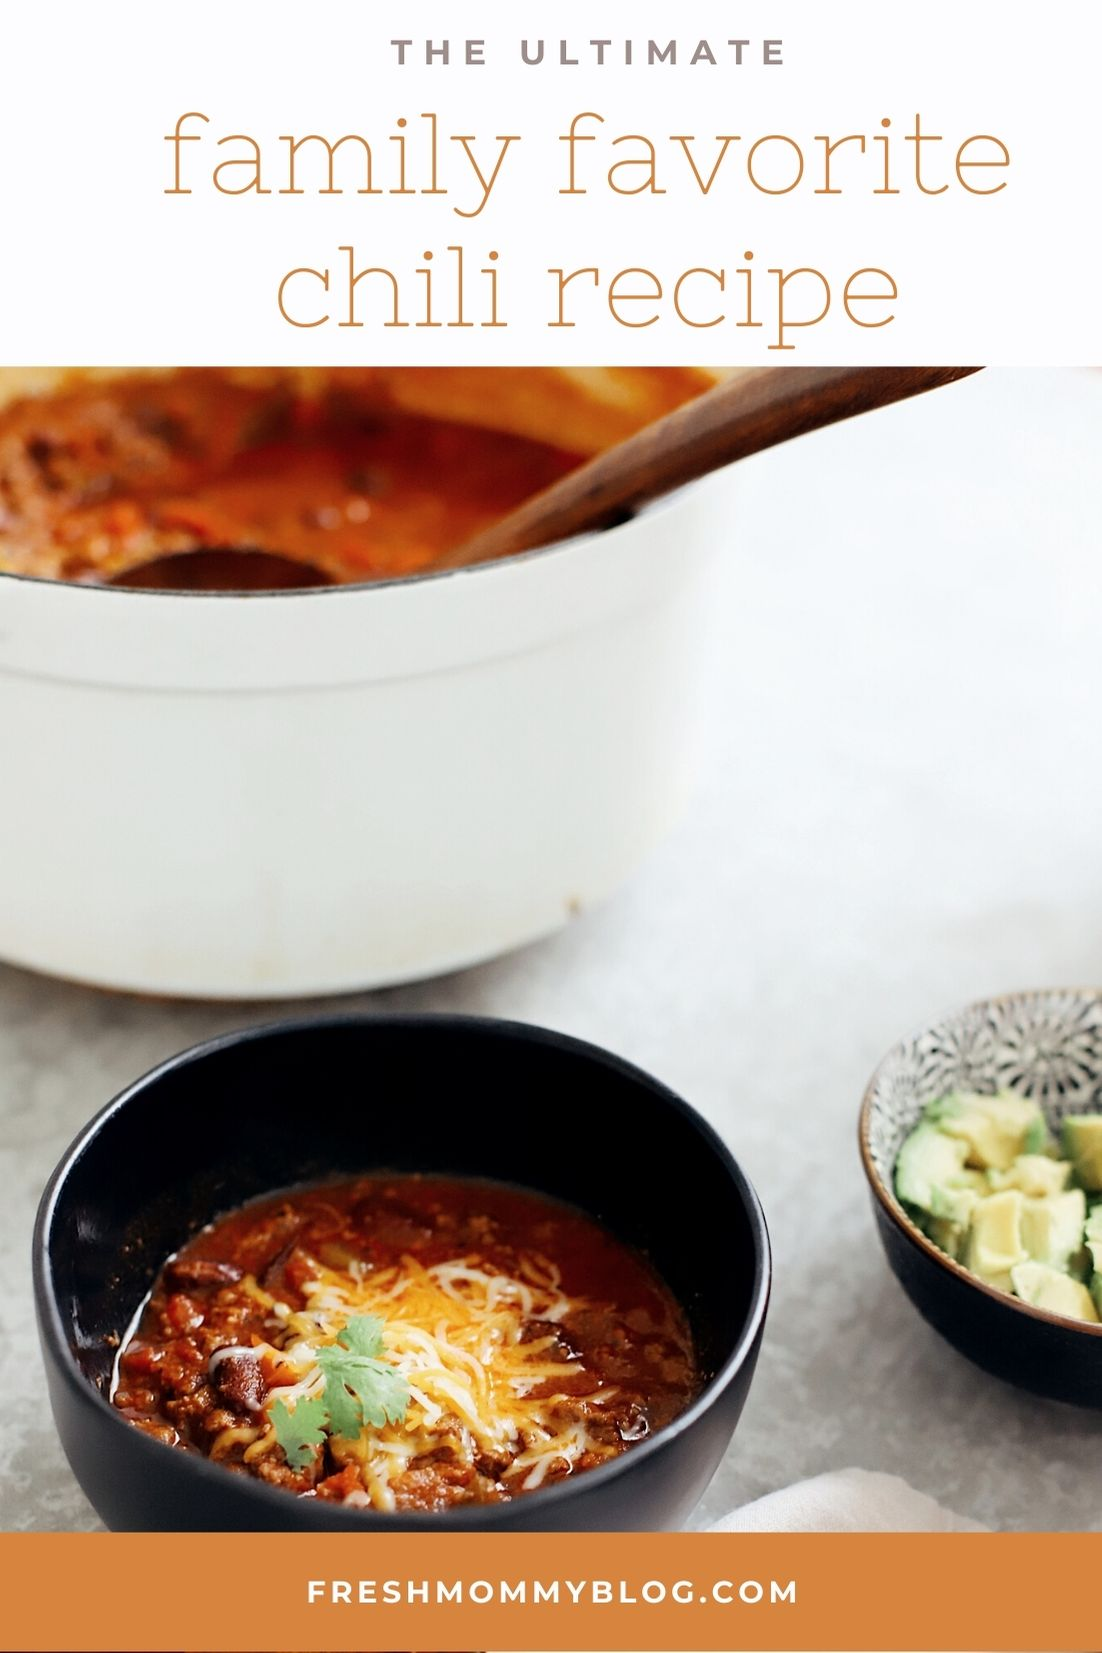 Easy Family Favorite Chili recipe! Make this delicious classic homemade chili in the crockpot or in one pot easily. It's THE BEST CHILI, and my family asks me to make it over and over. | Chili Recipe by popular Florida lifestyle blog, Fresh Mommy Blog: Pinterest of chili in a black ceramic bowl with shredded cheese on top.